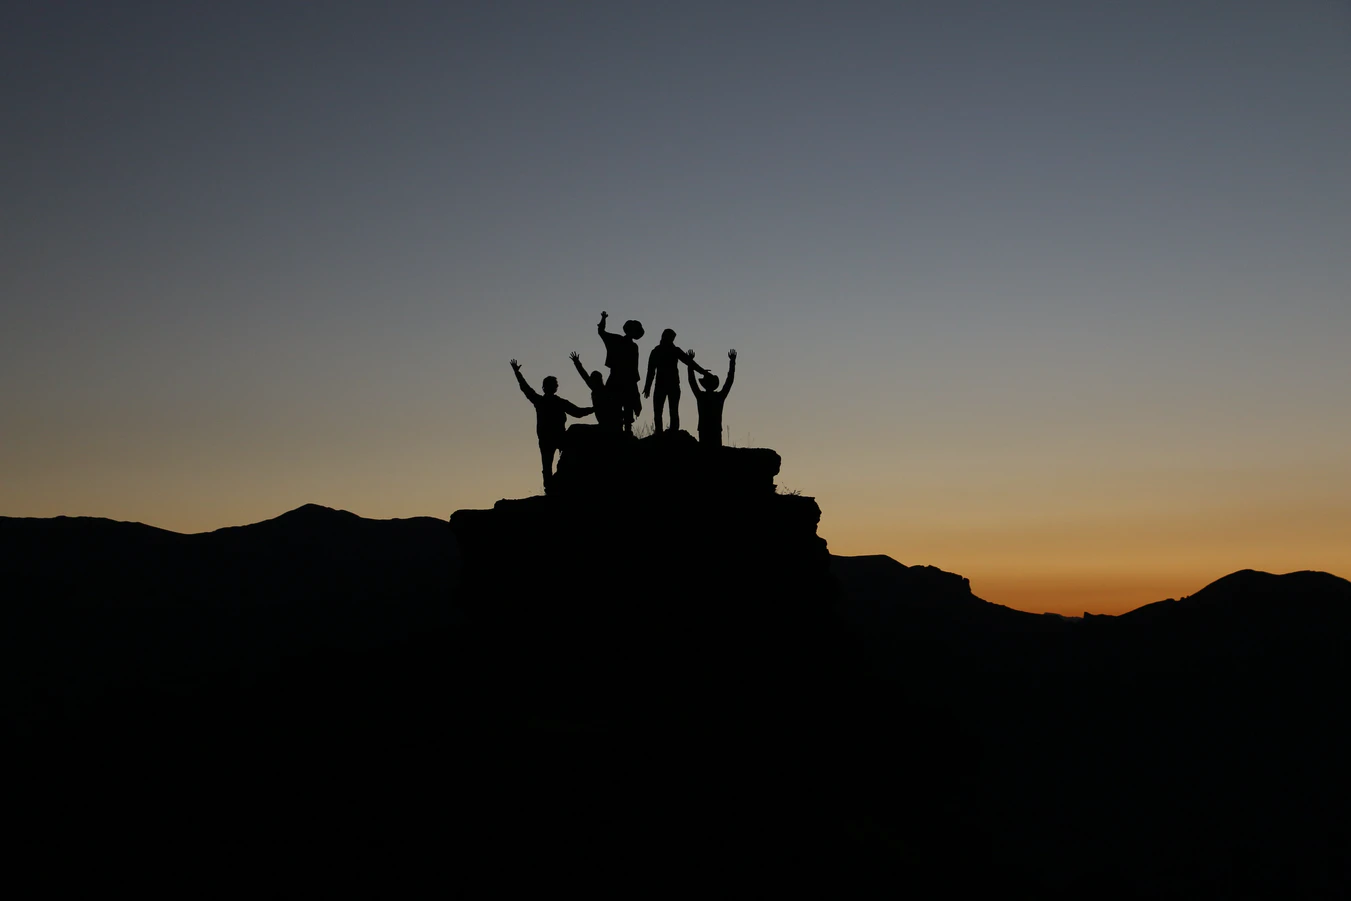 Silhouette of people hiking at sunset